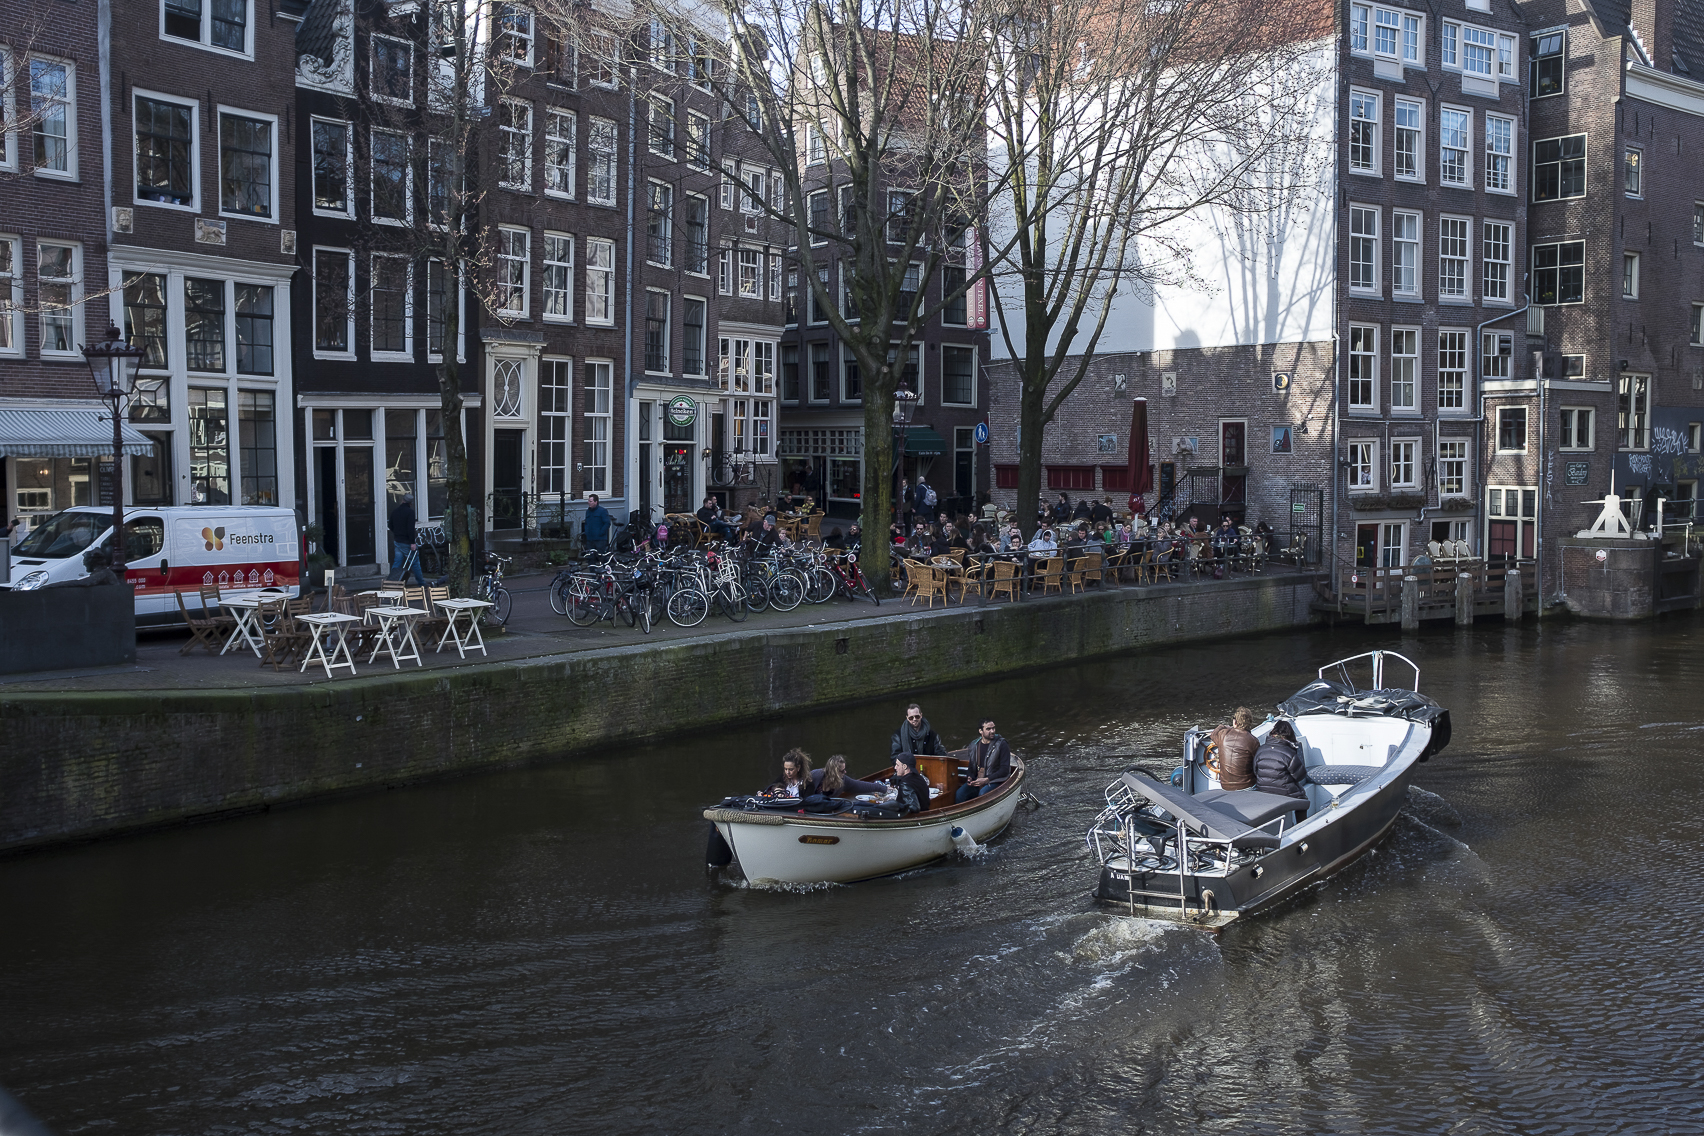 Boats pass on the canals in Amsterdam, Netherlands. March 12, 2017.